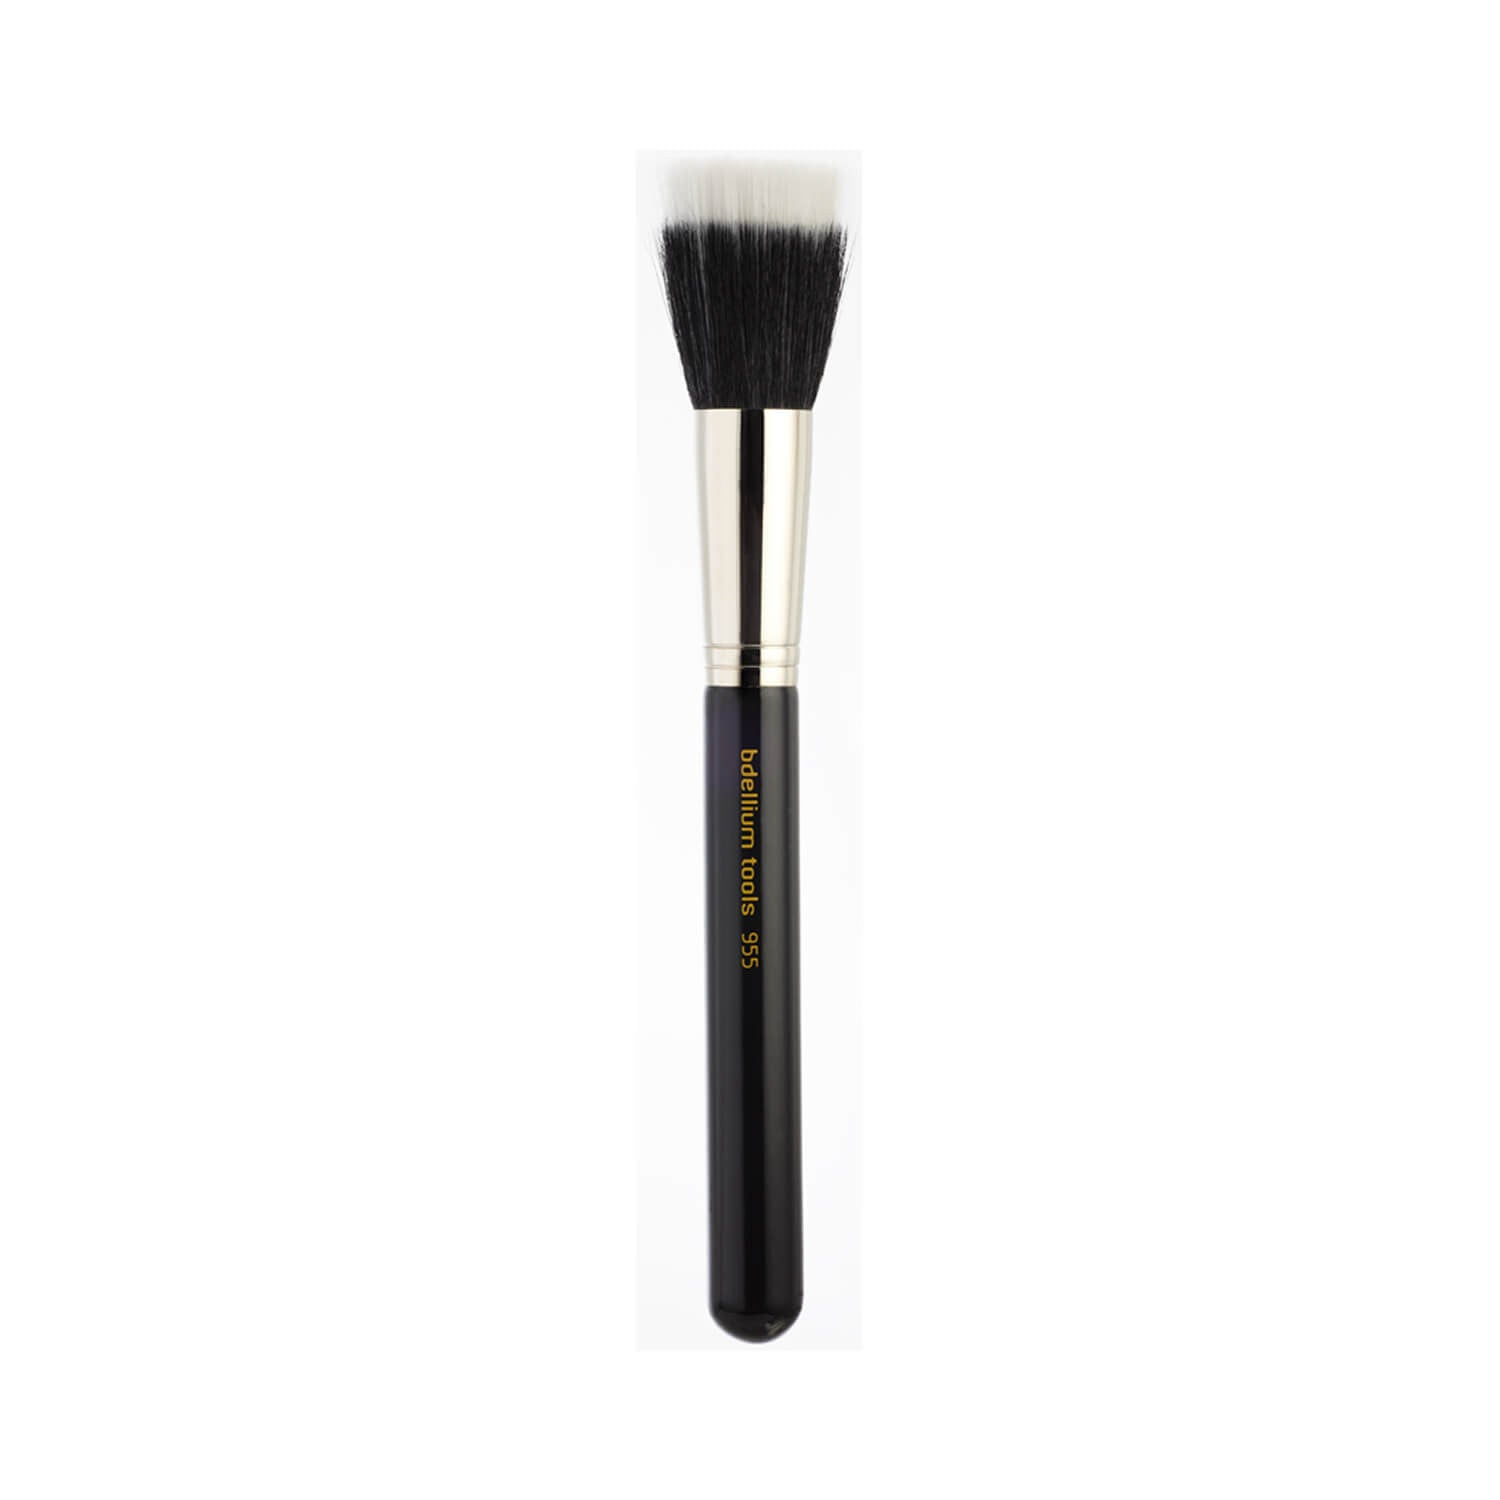 BDellium Tools Maestro Line 955 Finishing Brush Black